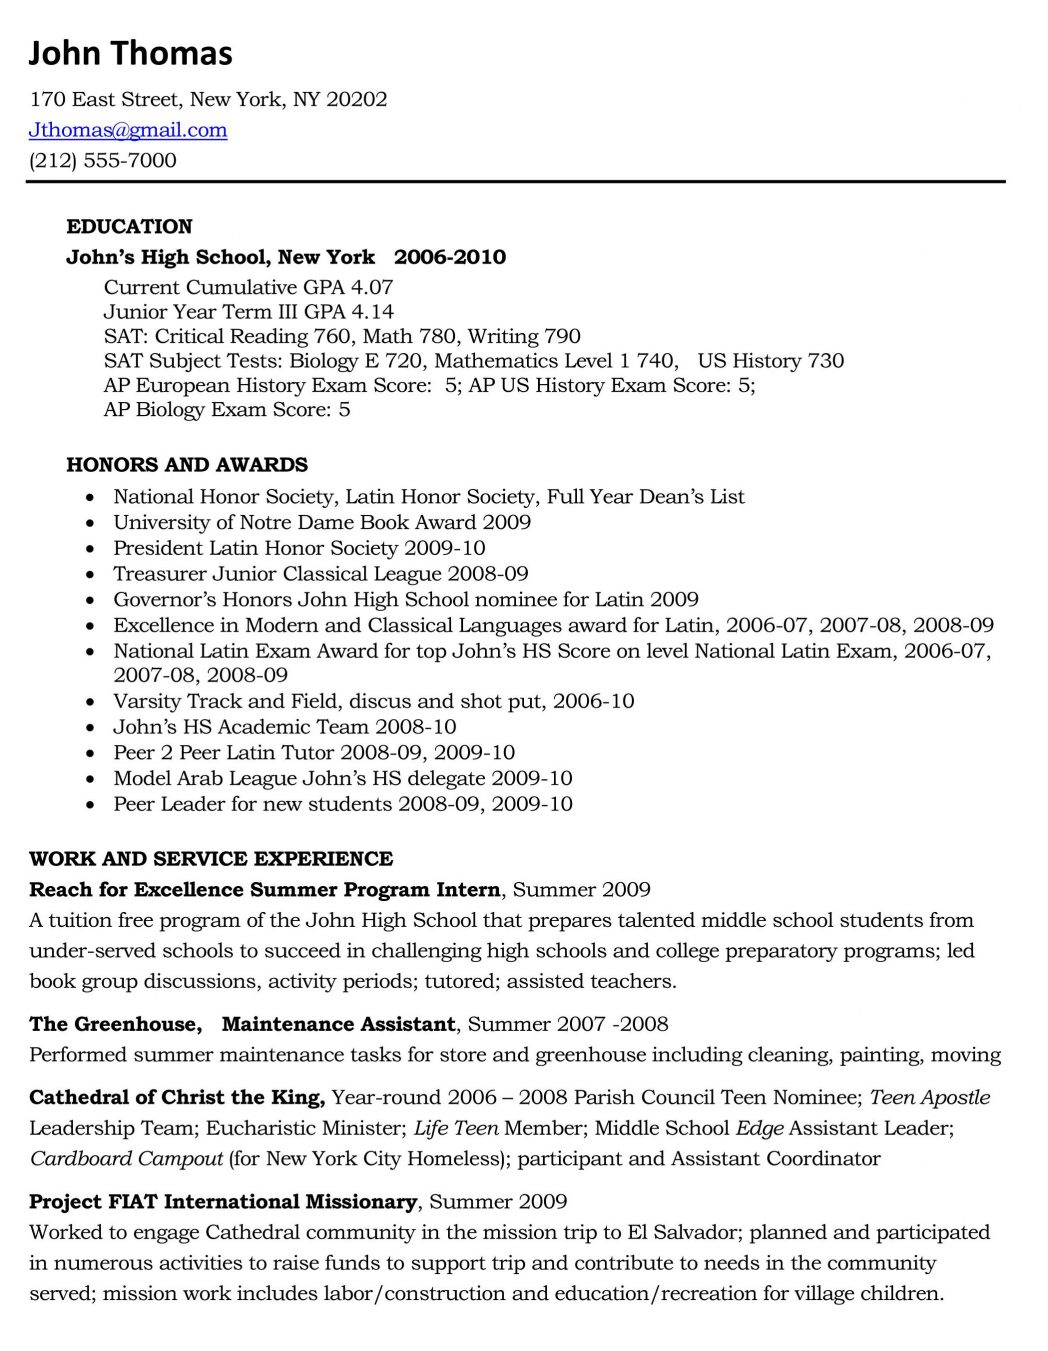 008 Essay On Texting Resume Jpg Persuasive Should Cellphones Allowed In S Cell Phones Not School Reasons Why Argumentative Banned Mobile 1048x1351 Fantastic Be Full